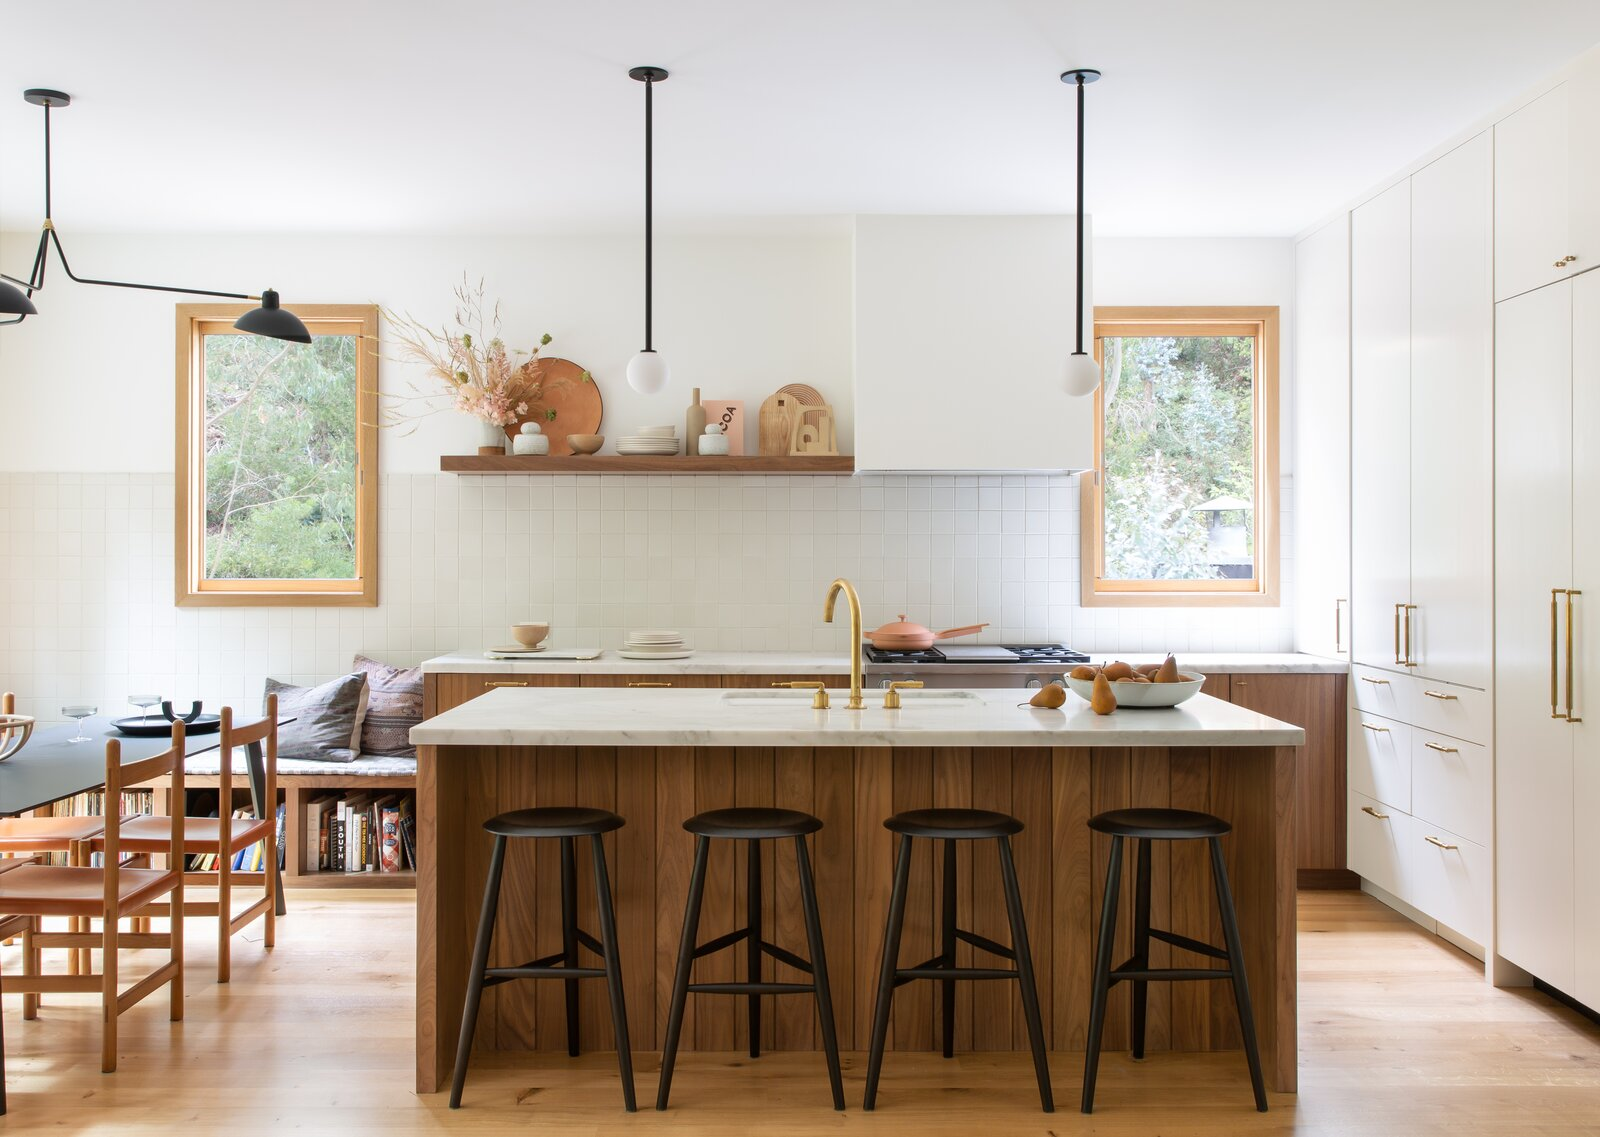 Kitchen, Light Hardwood Floor, Ceramic Tile Backsplashe, Pendant Lighting, Cooktops, Drop In Sink, White Cabinet, Subway Tile Backsplashe, and Marble Counter The kitchen tiles are by Heath Ceramics with barstools by March SF and pendant lights by Allied Maker.  Photo 6 of 14 in This Colorful House in San Francisco May Be Boxy, but It's Anything but Square